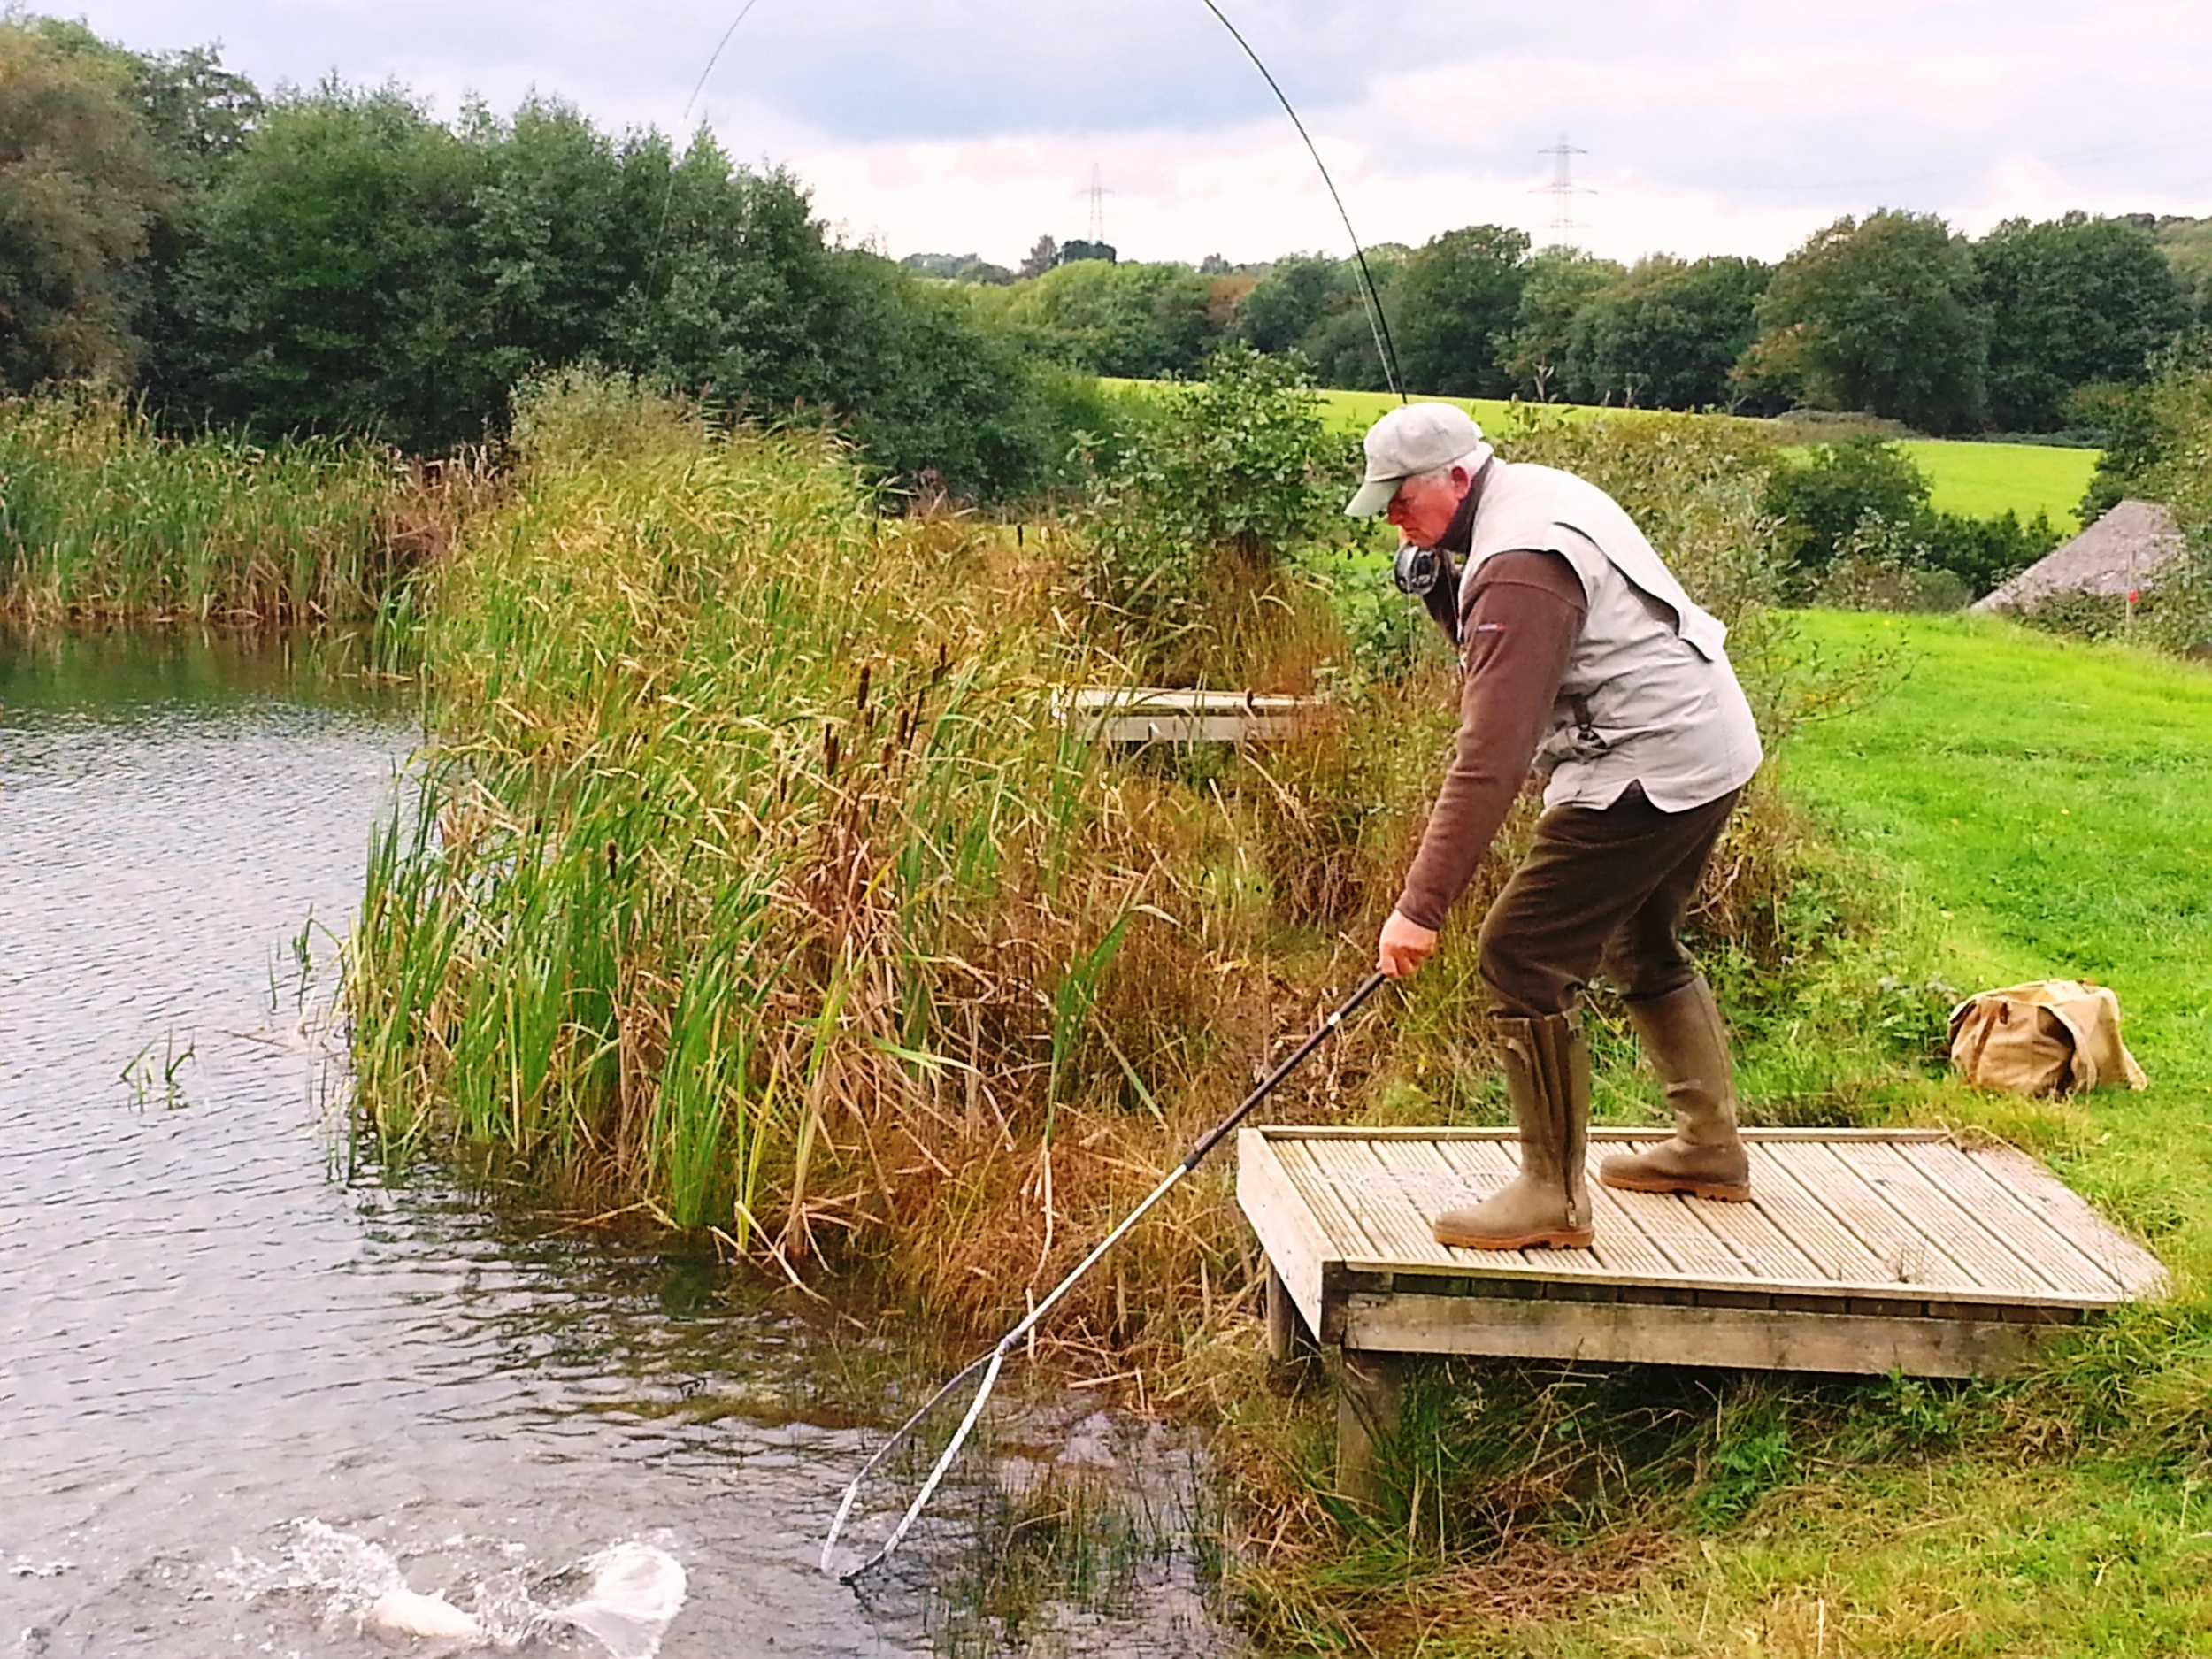 Peter James fishing in Well Lake on a stunning autumn day